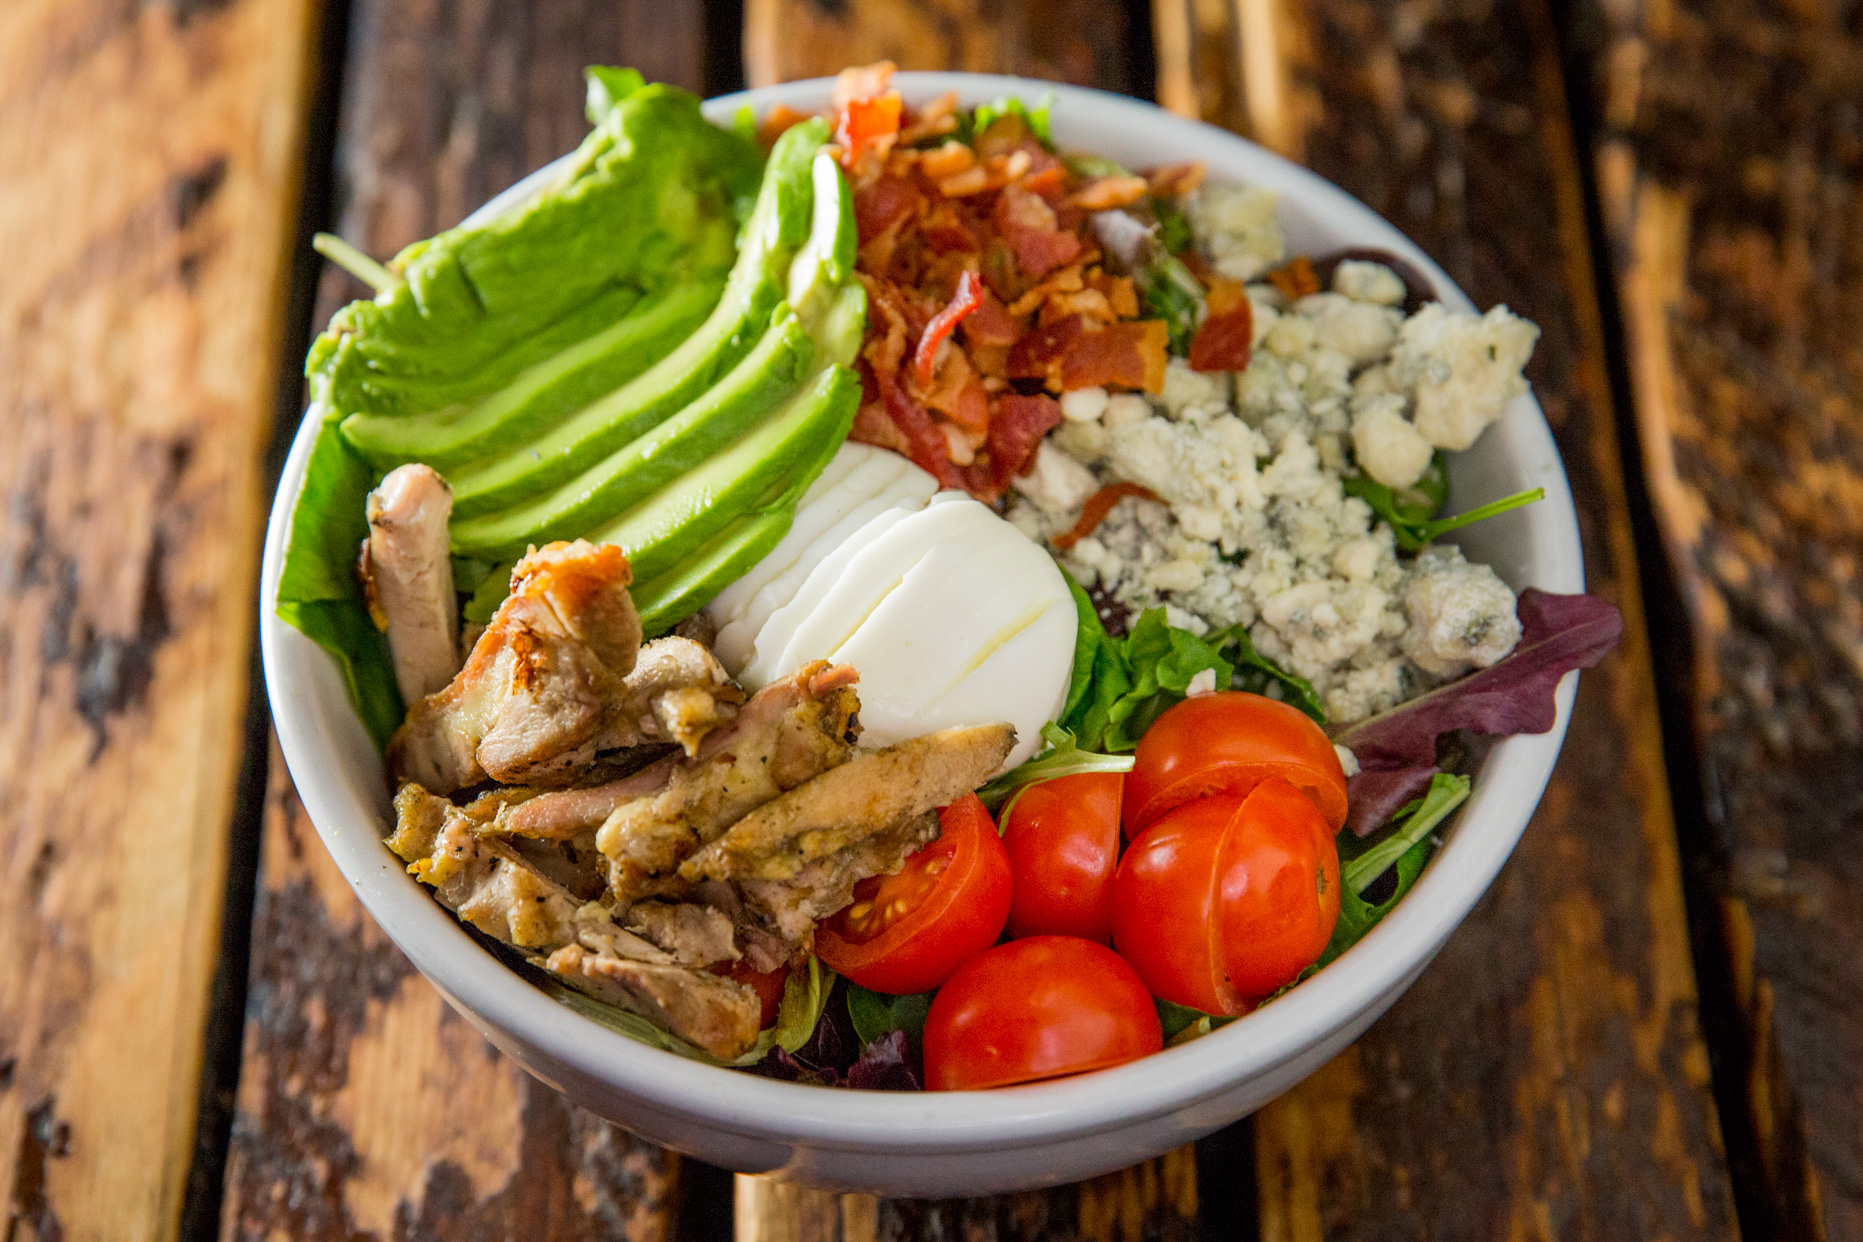 Chopped Salad with Grilled Chicken, Bacon and Avocado